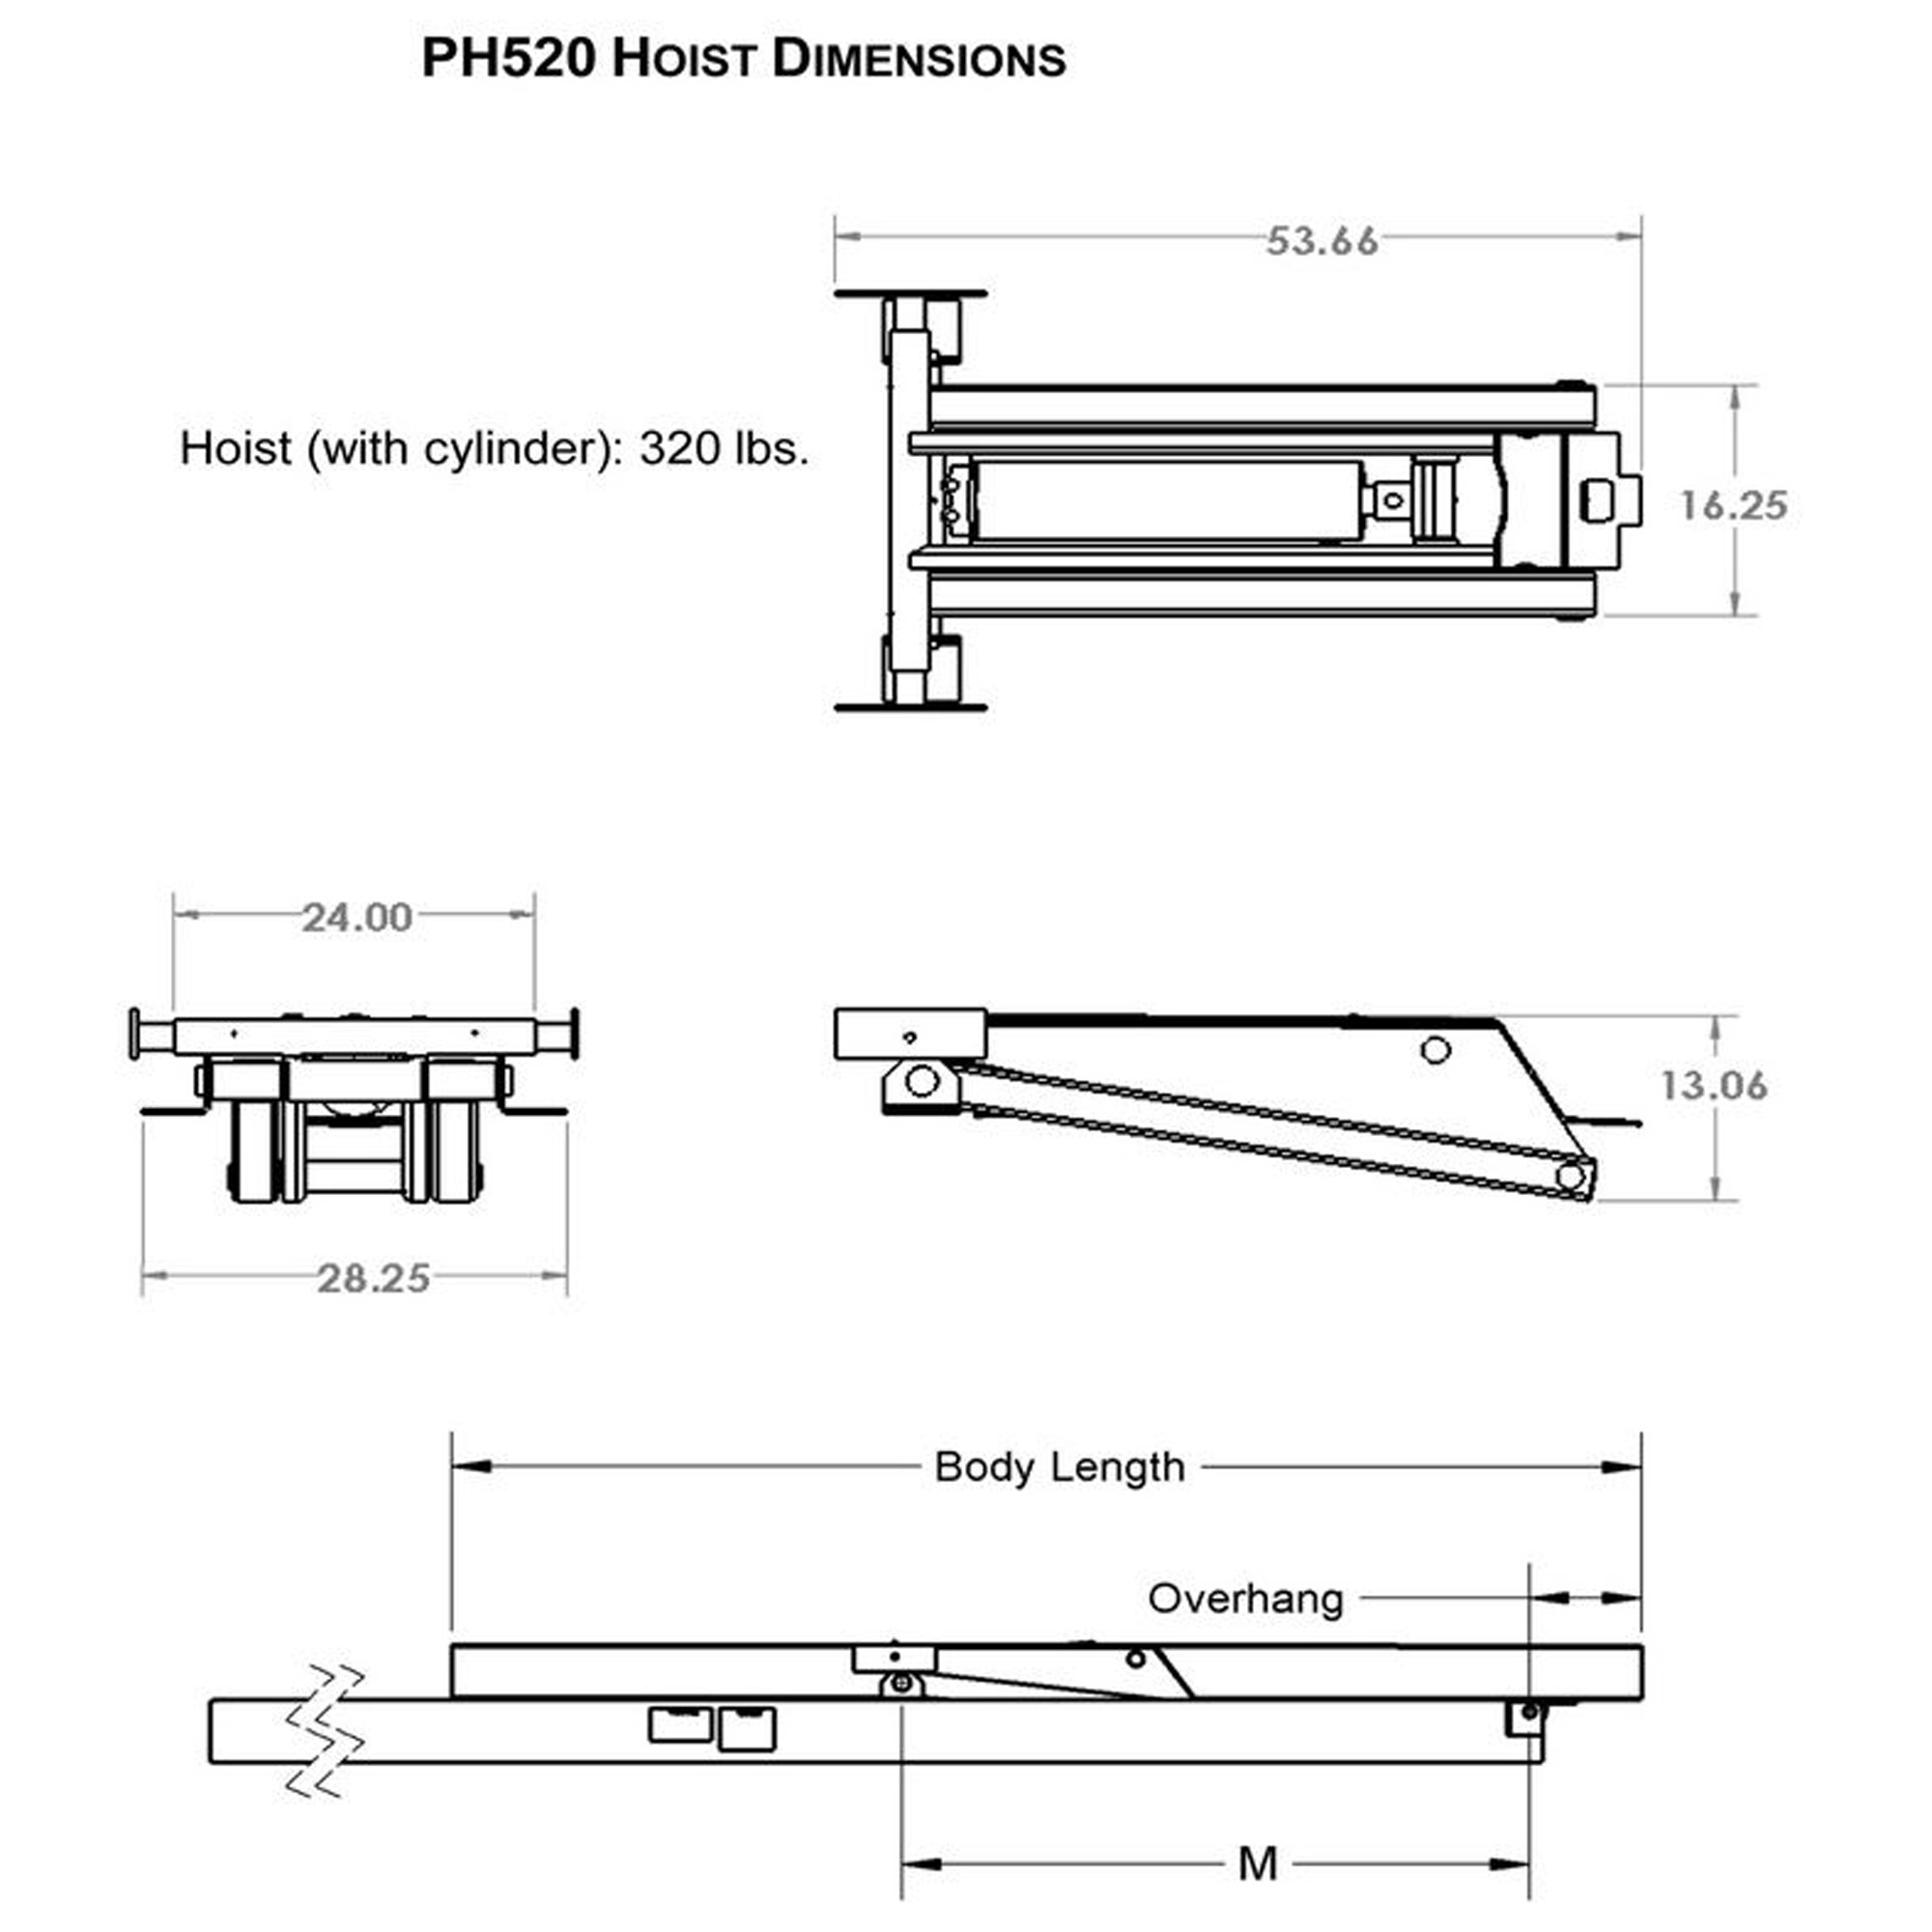 Premium Supply PH520 Power Hoist Dimensions?x88201 10 ton (20,000 lb) dump trailer hydraulic scissor hoist kit ph520 dump trailer hydraulic pump wiring diagram at aneh.co